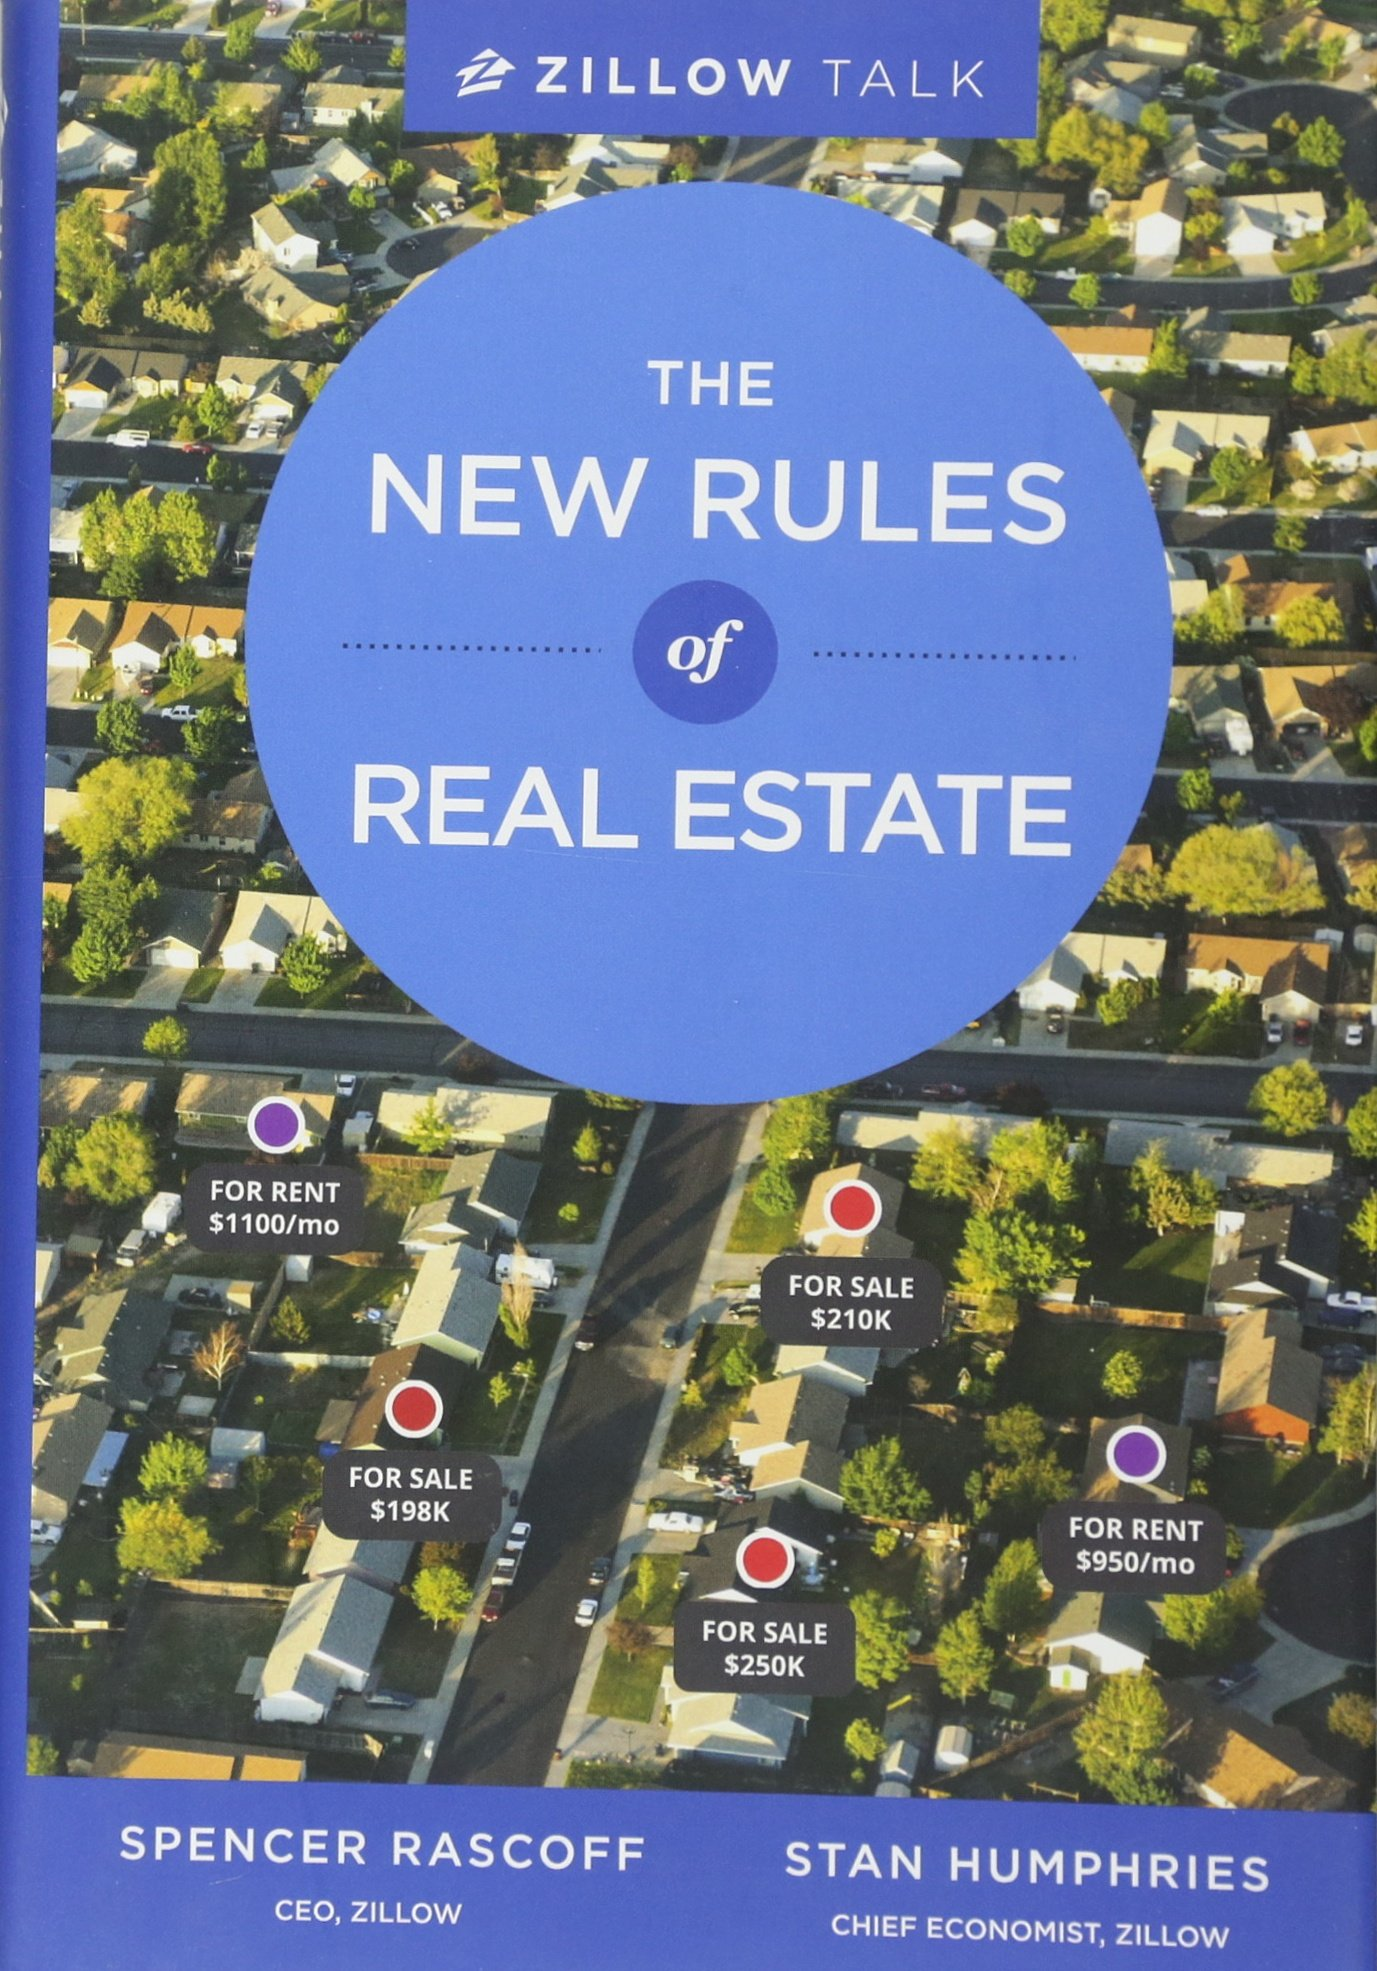 zillow talk the new rules of real estate spencer rascoff stan